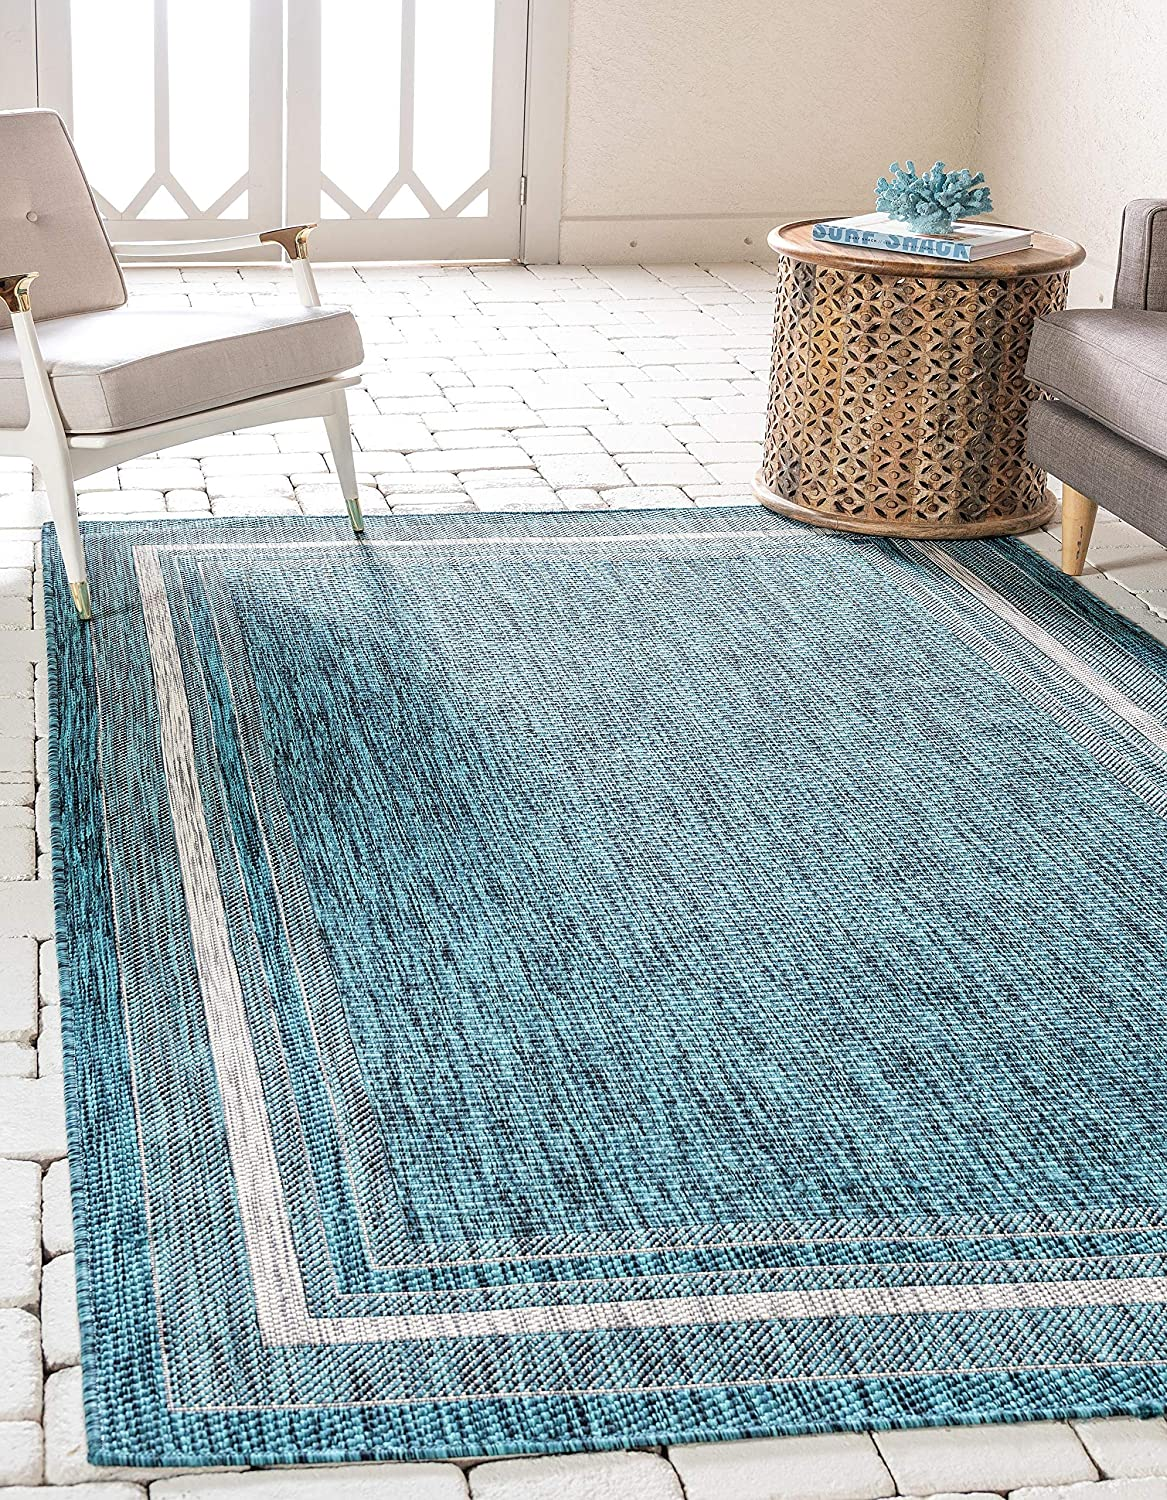 Unique Loom Outdoor Border Collection Casual Solid Border Transitional Indoor and Outdoor Flatweave Teal Area Rug (9' 0 x 12' 0)